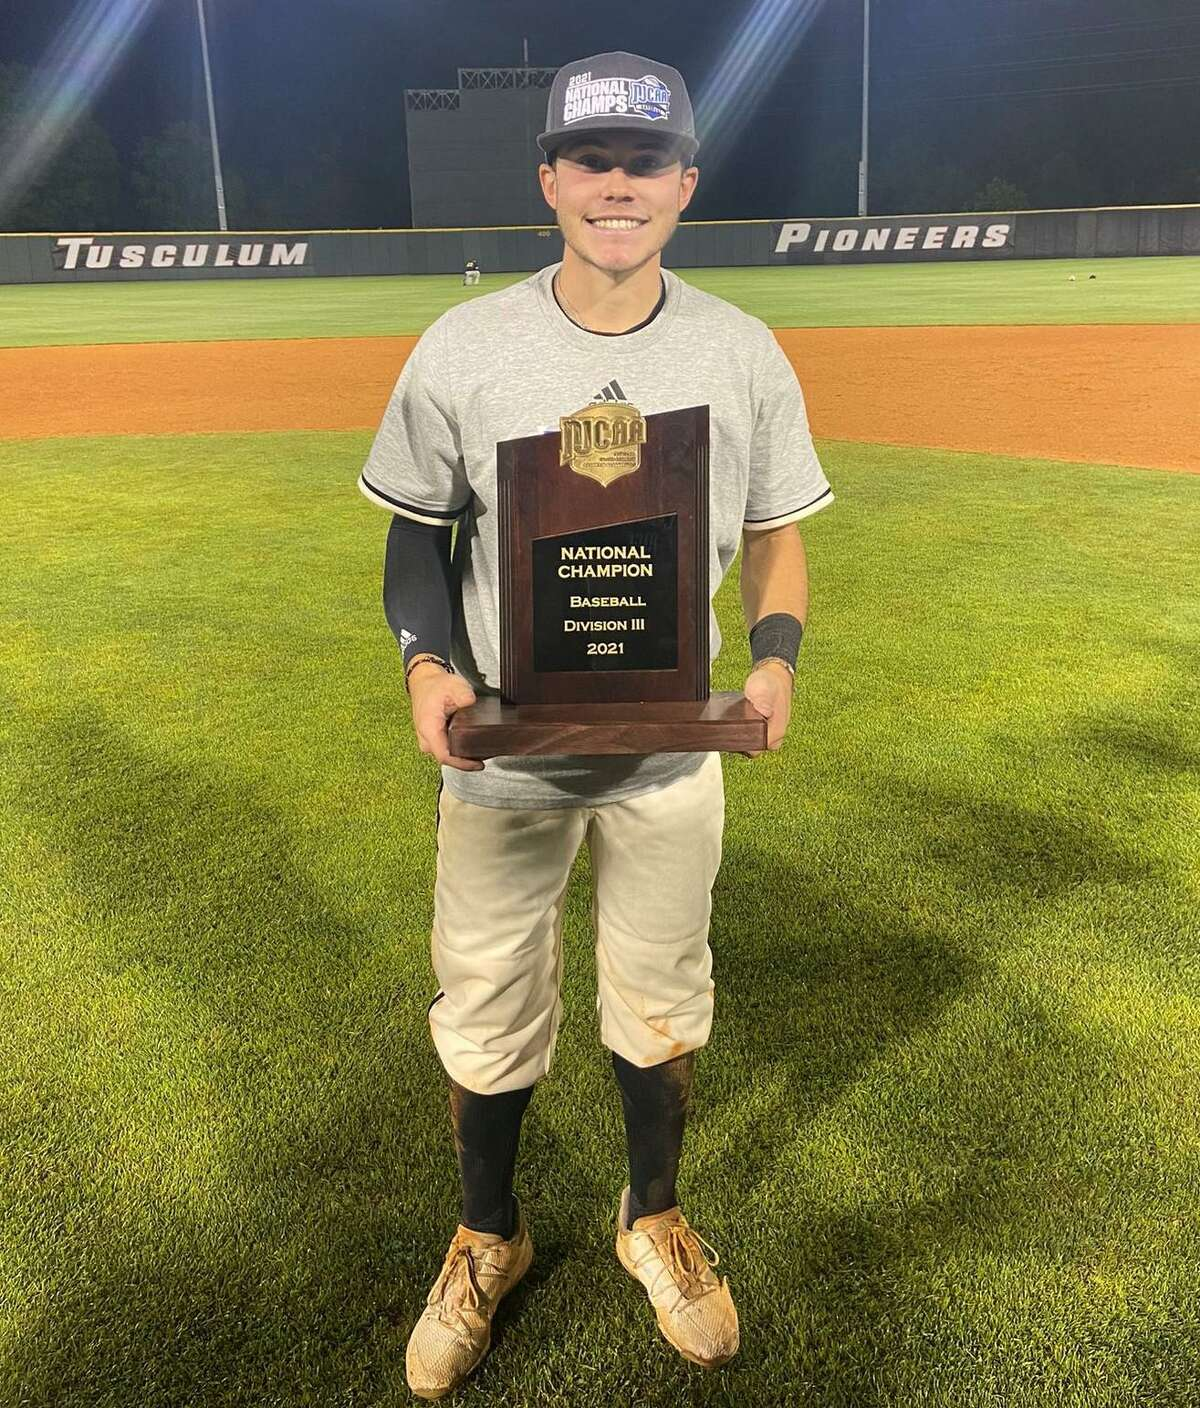 Conroe grad Tyler Linneweber won the NJCAA Division III baseball championship playing for Tyler Junior College in Greenville, Tennessee on June 2, 2021.